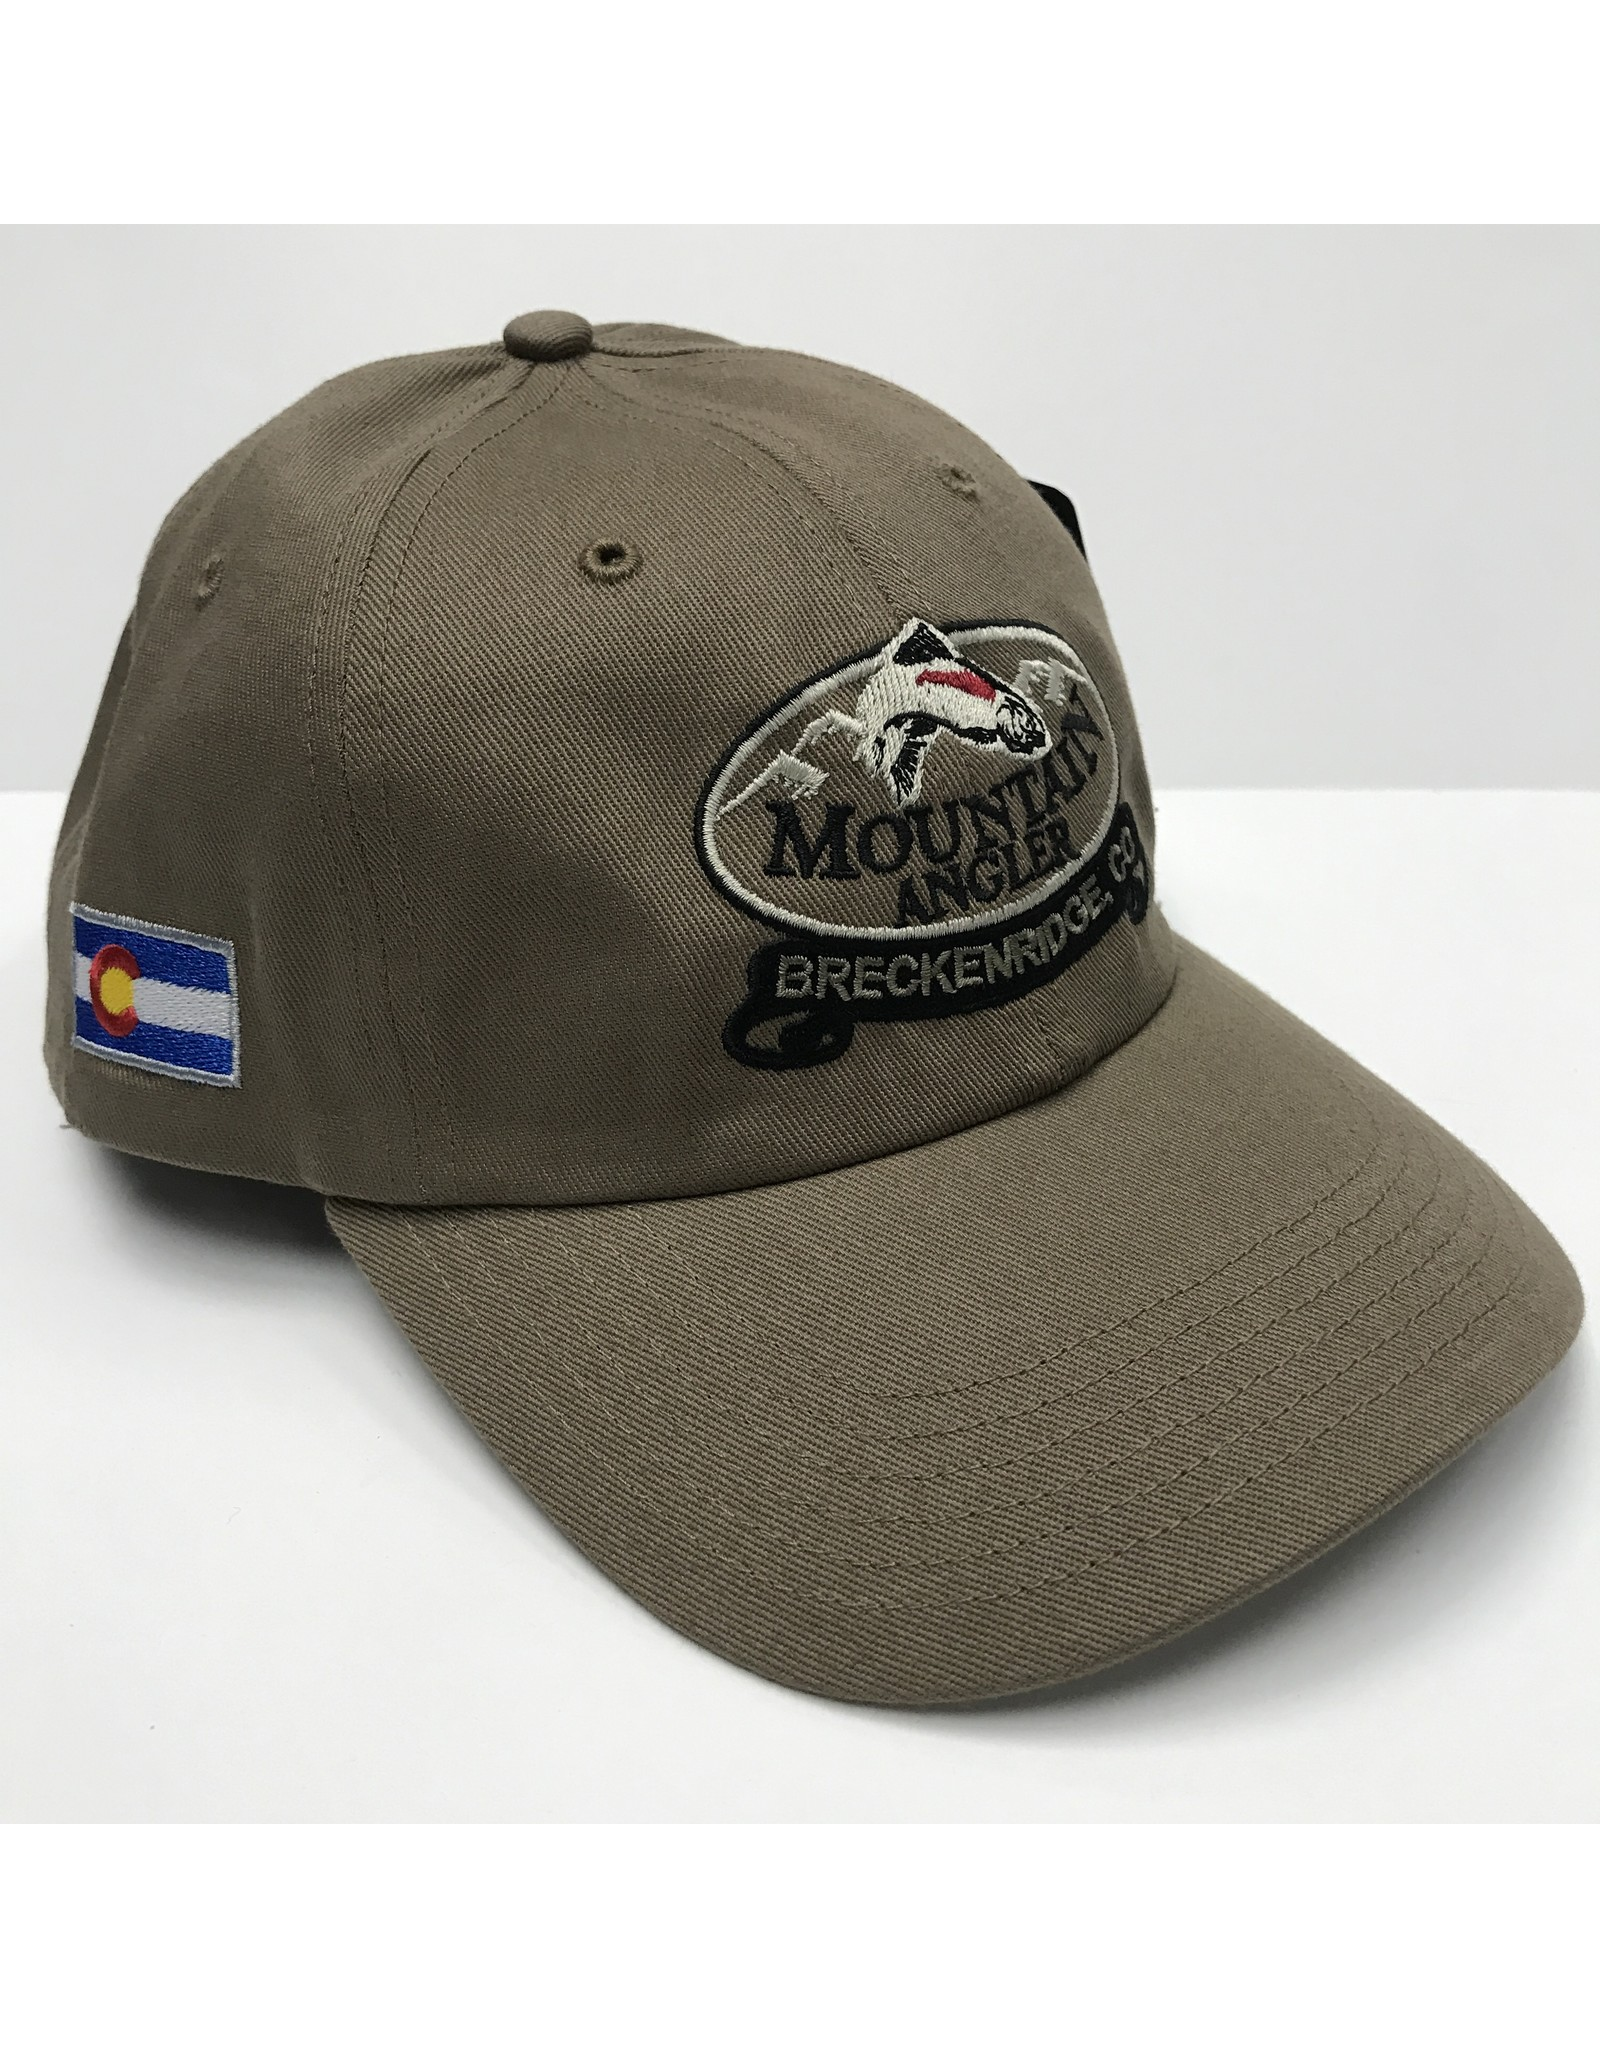 Richardson Richardson - R65 Unstructured Twill Cap - MOUNTAIN ANGLER LOGO